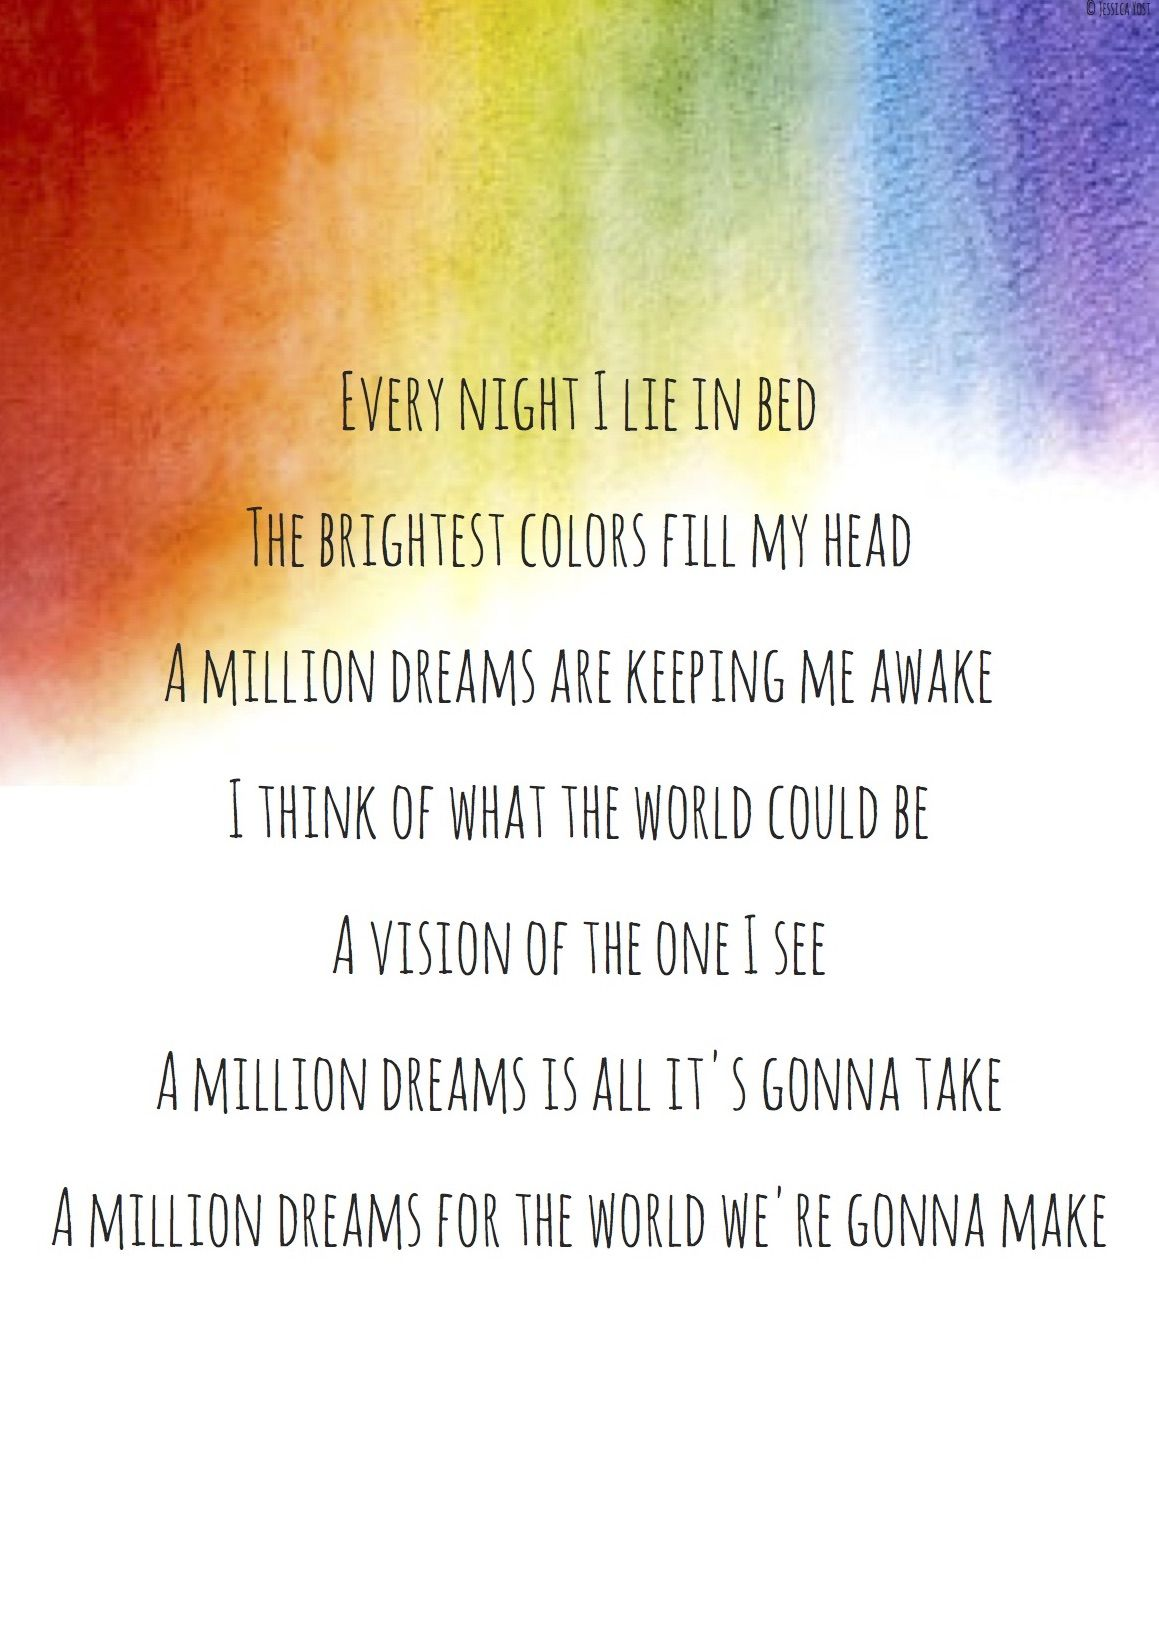 image relating to A Million Dreams Lyrics Printable named A million wishes- the most important showman lyrics estimates